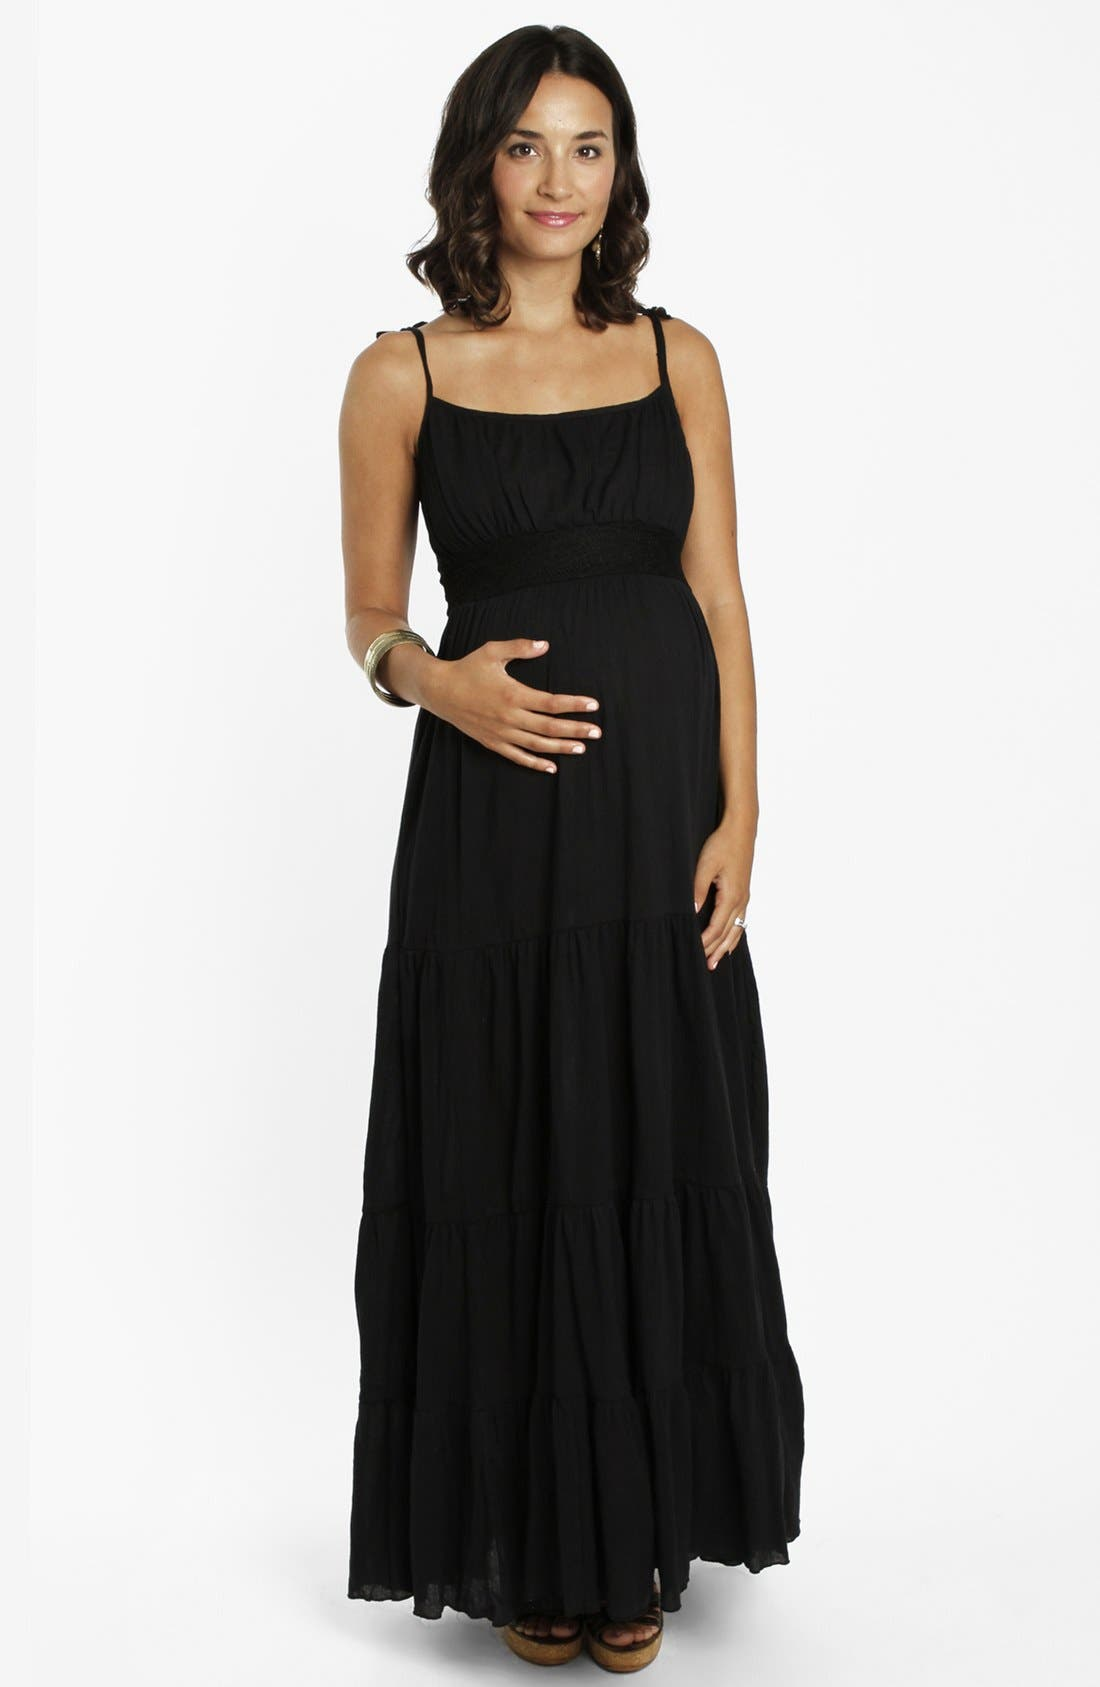 Main Image - Everly Grey 'Poppy' Tiered Maternity Maxi Dress